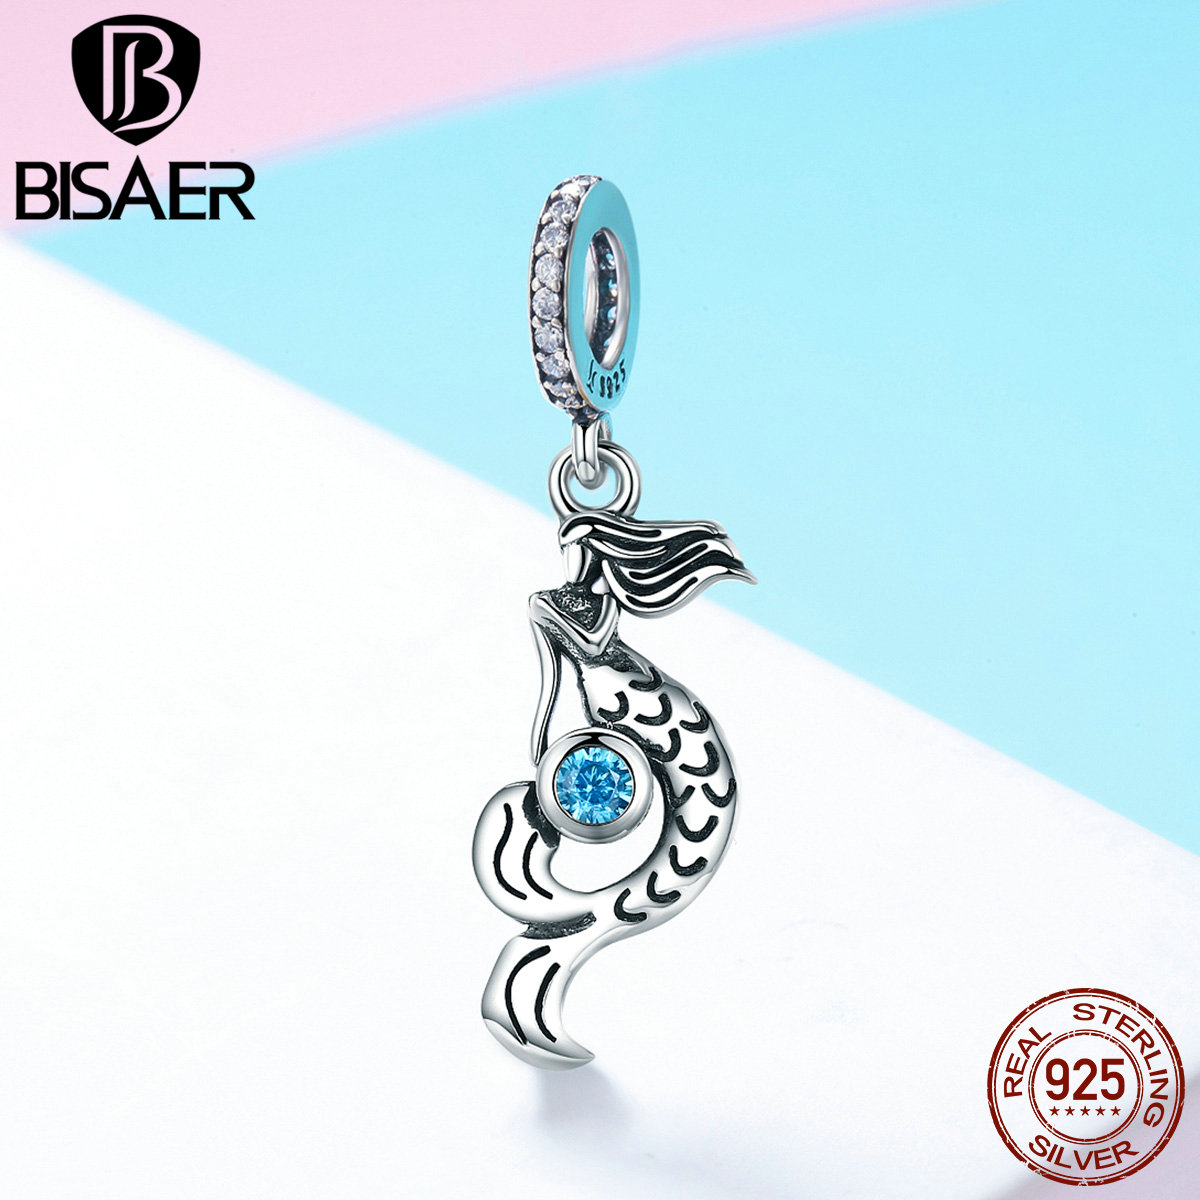 Pendant 925 Stering Silver Blue CZ Elegant Mermaid Charm for Women 925 Original Bracelet Beads for Jewelry Making GXC824